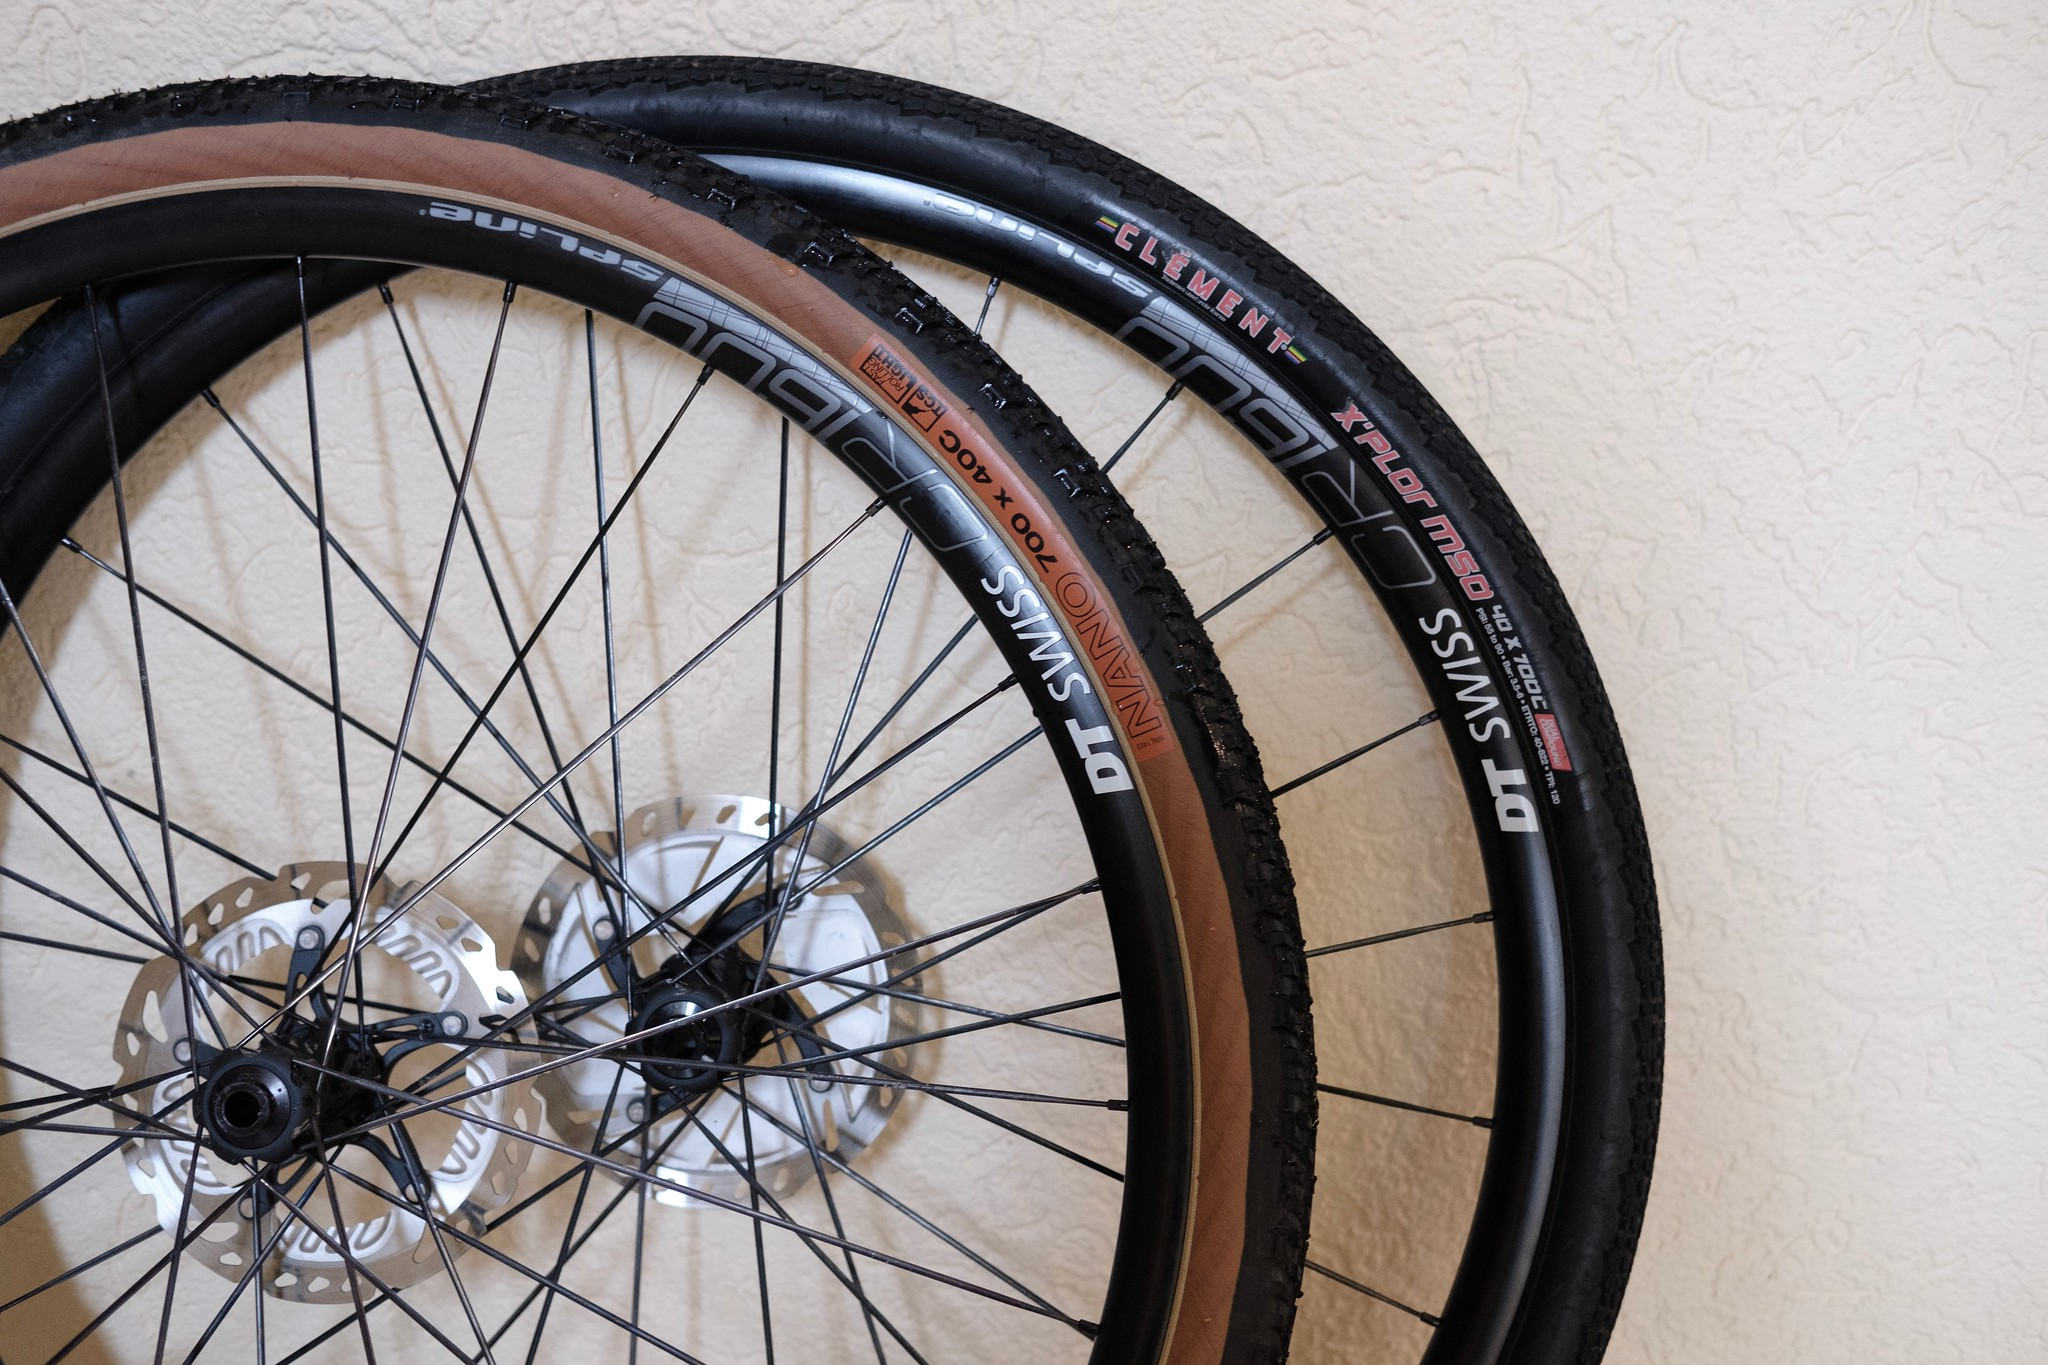 Two DT Swiss CR 1600 Spline 23 wheels with different tyres leaning against a wall